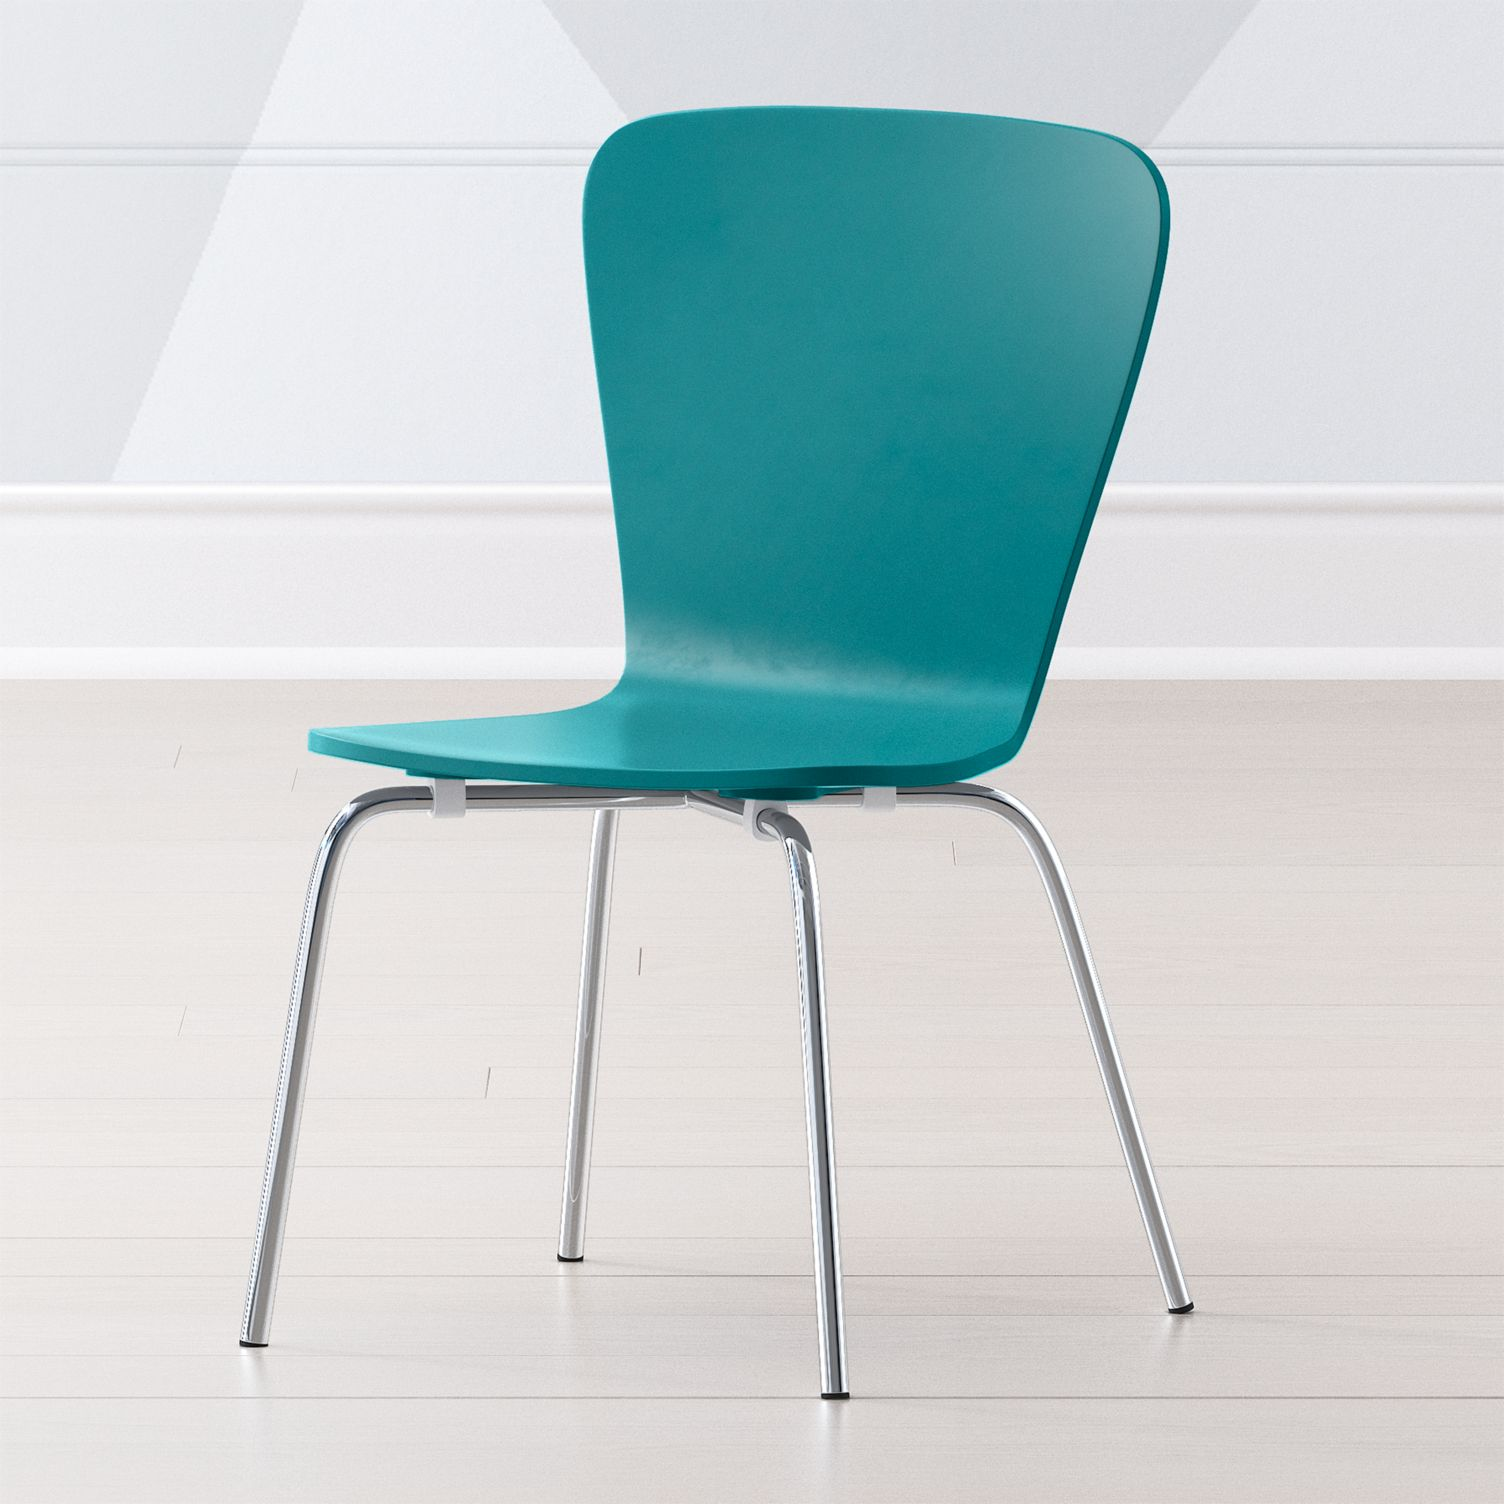 Teal modern stackable chairs